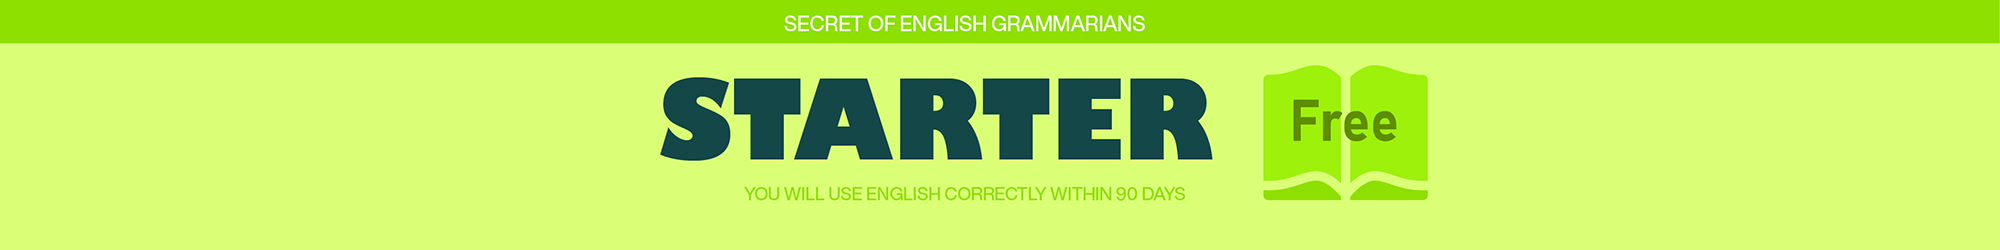 ENGLISH GRAMMAR FOR STARTER banner